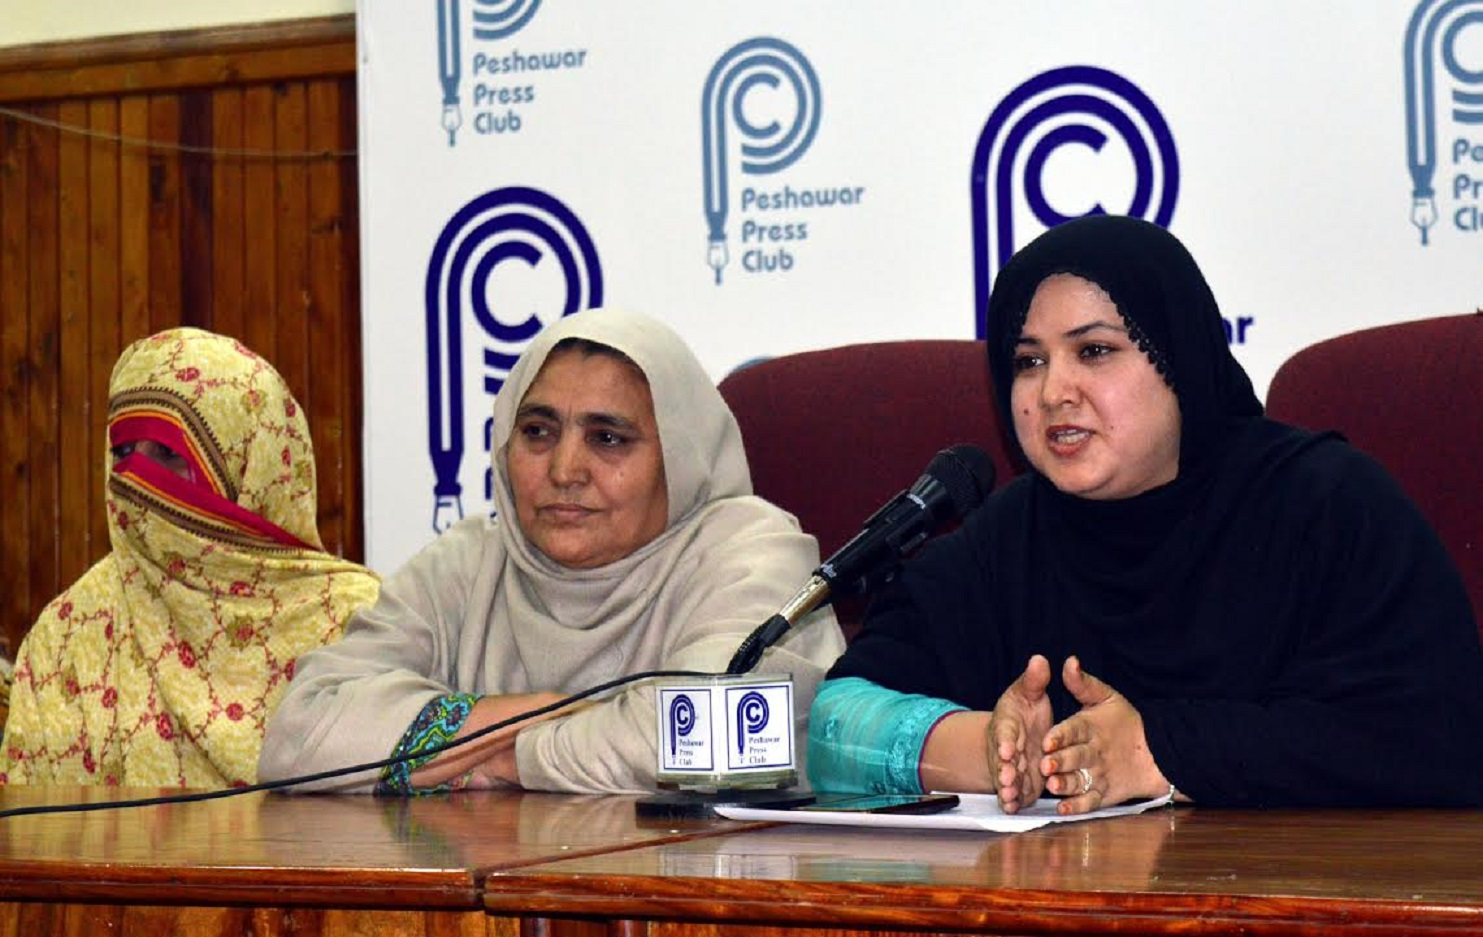 Tribal women seek political, social rights in FATA